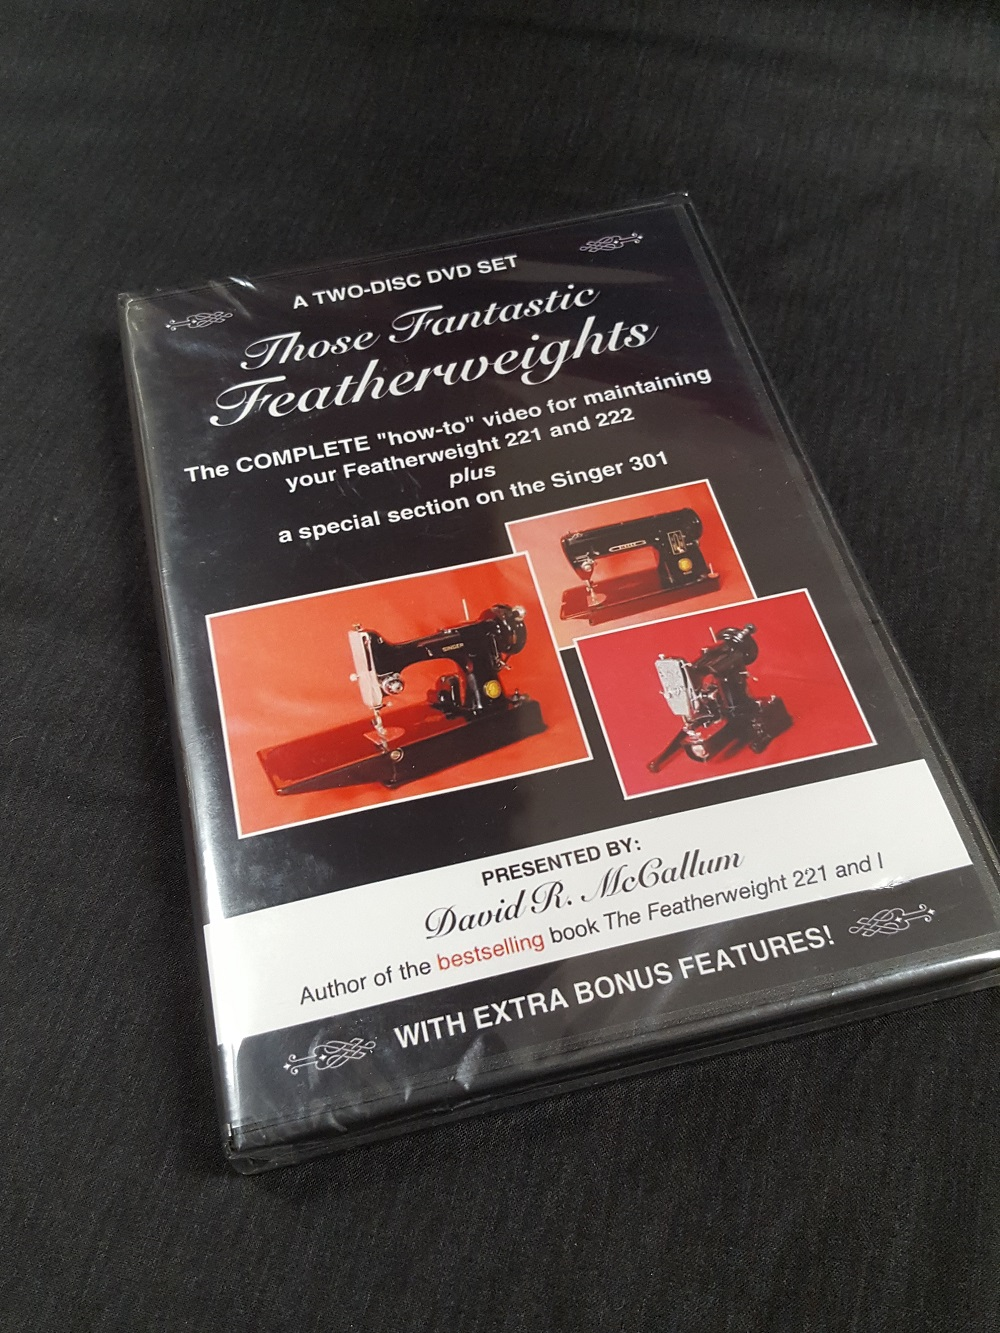 Those Fantastic Featherweights Maintenance DVD